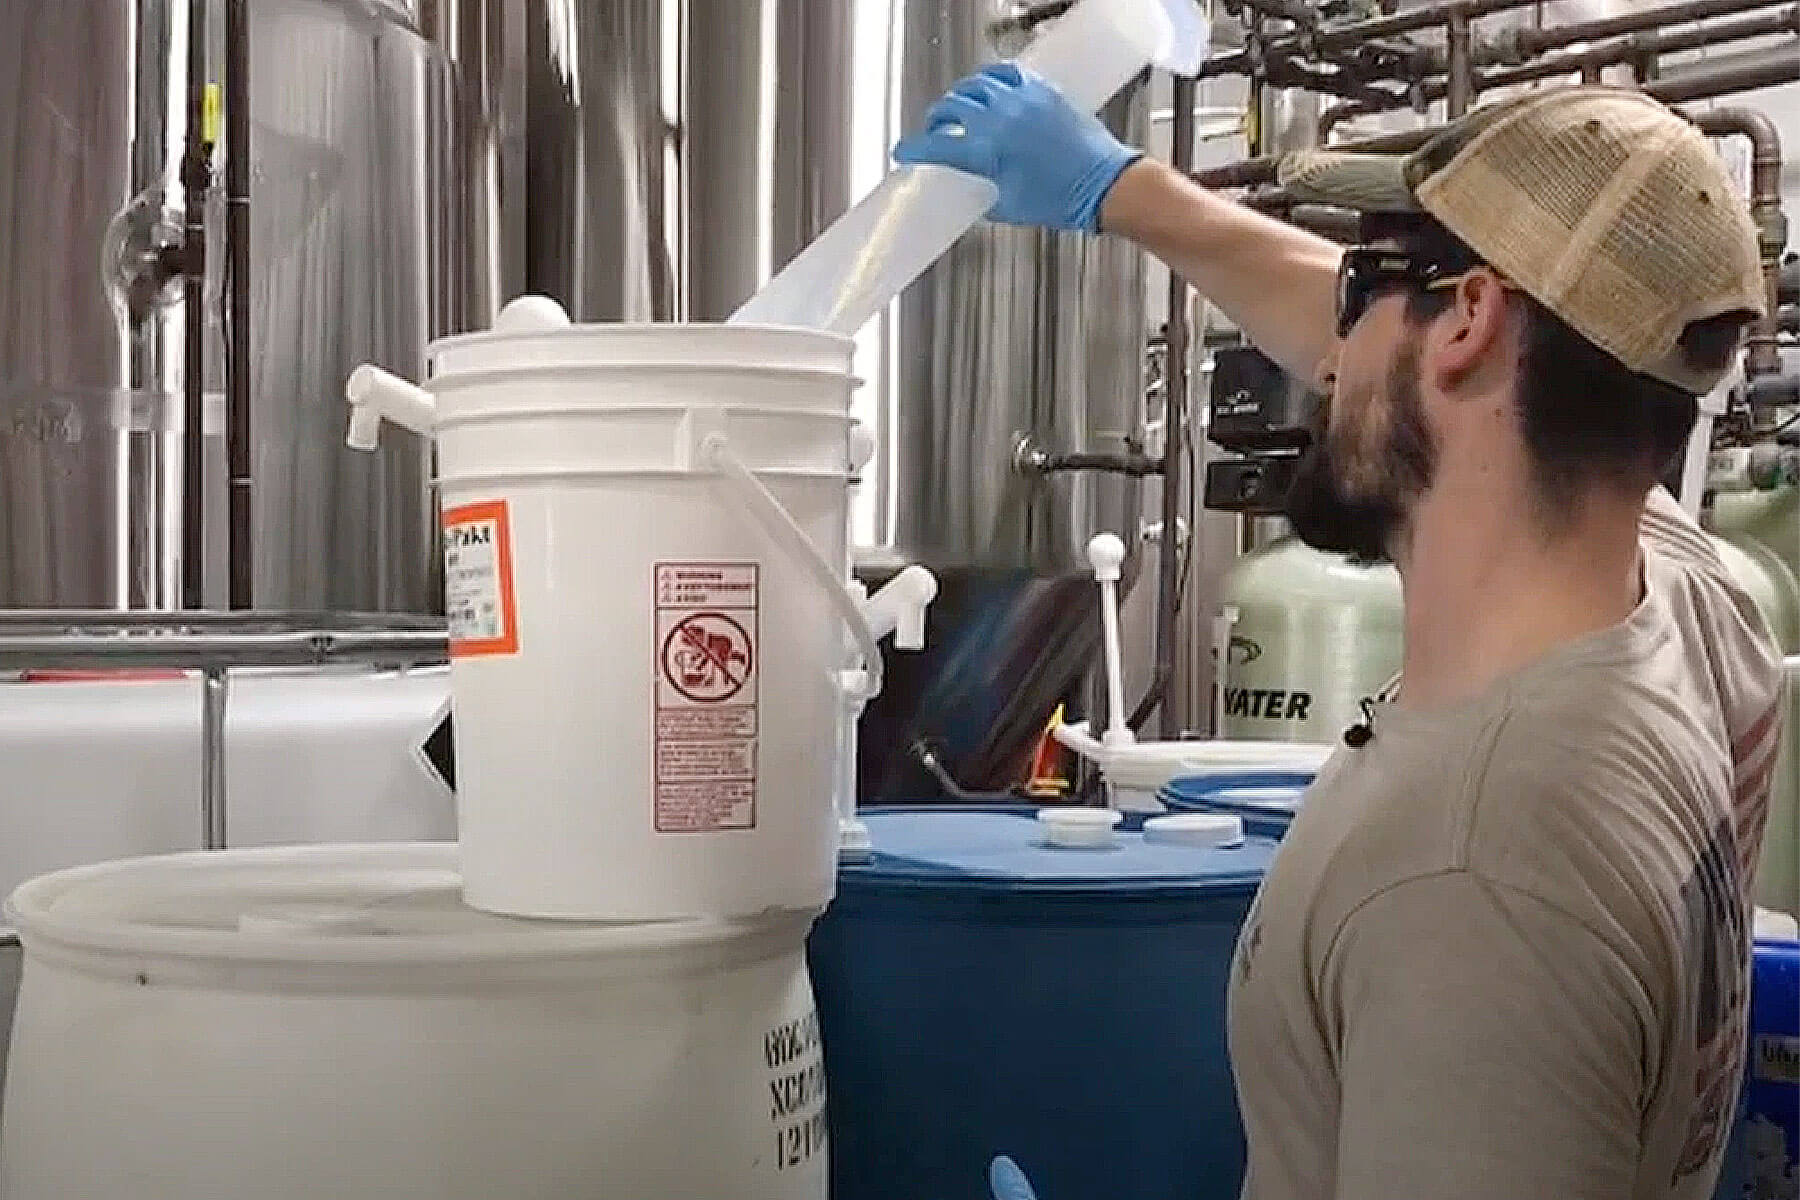 Big Storm Brewing Co. is now operating 24-hours a day, 7-days a week to help meet the nation's need for hand sanitizer due to the spread of coronavirus.